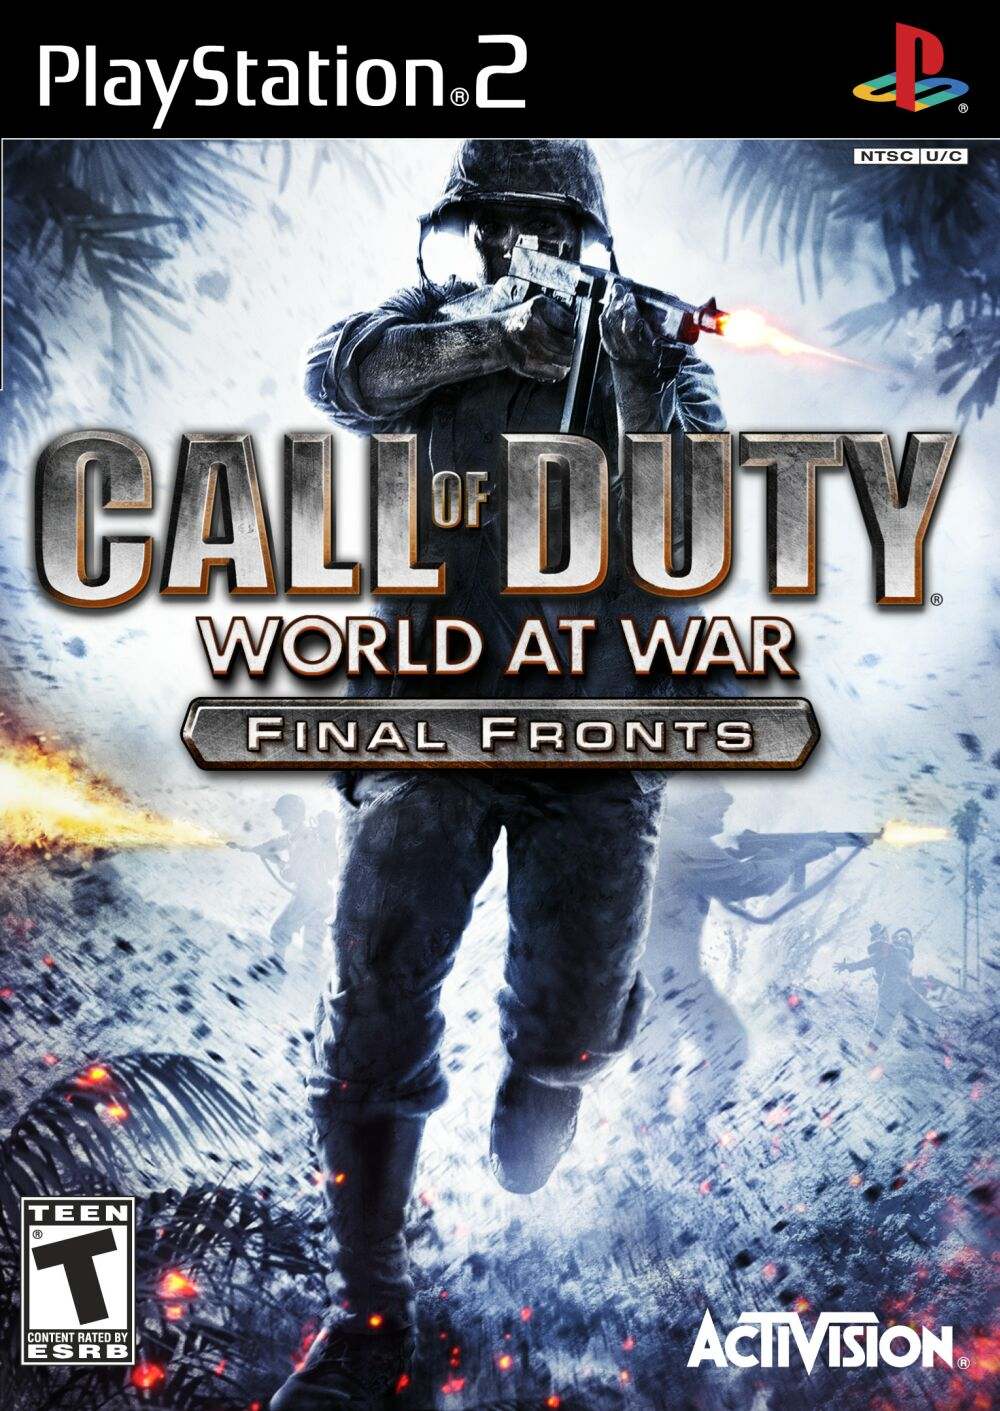 Call of Duty World at War Final Fronts Sony Playstation 2 Game